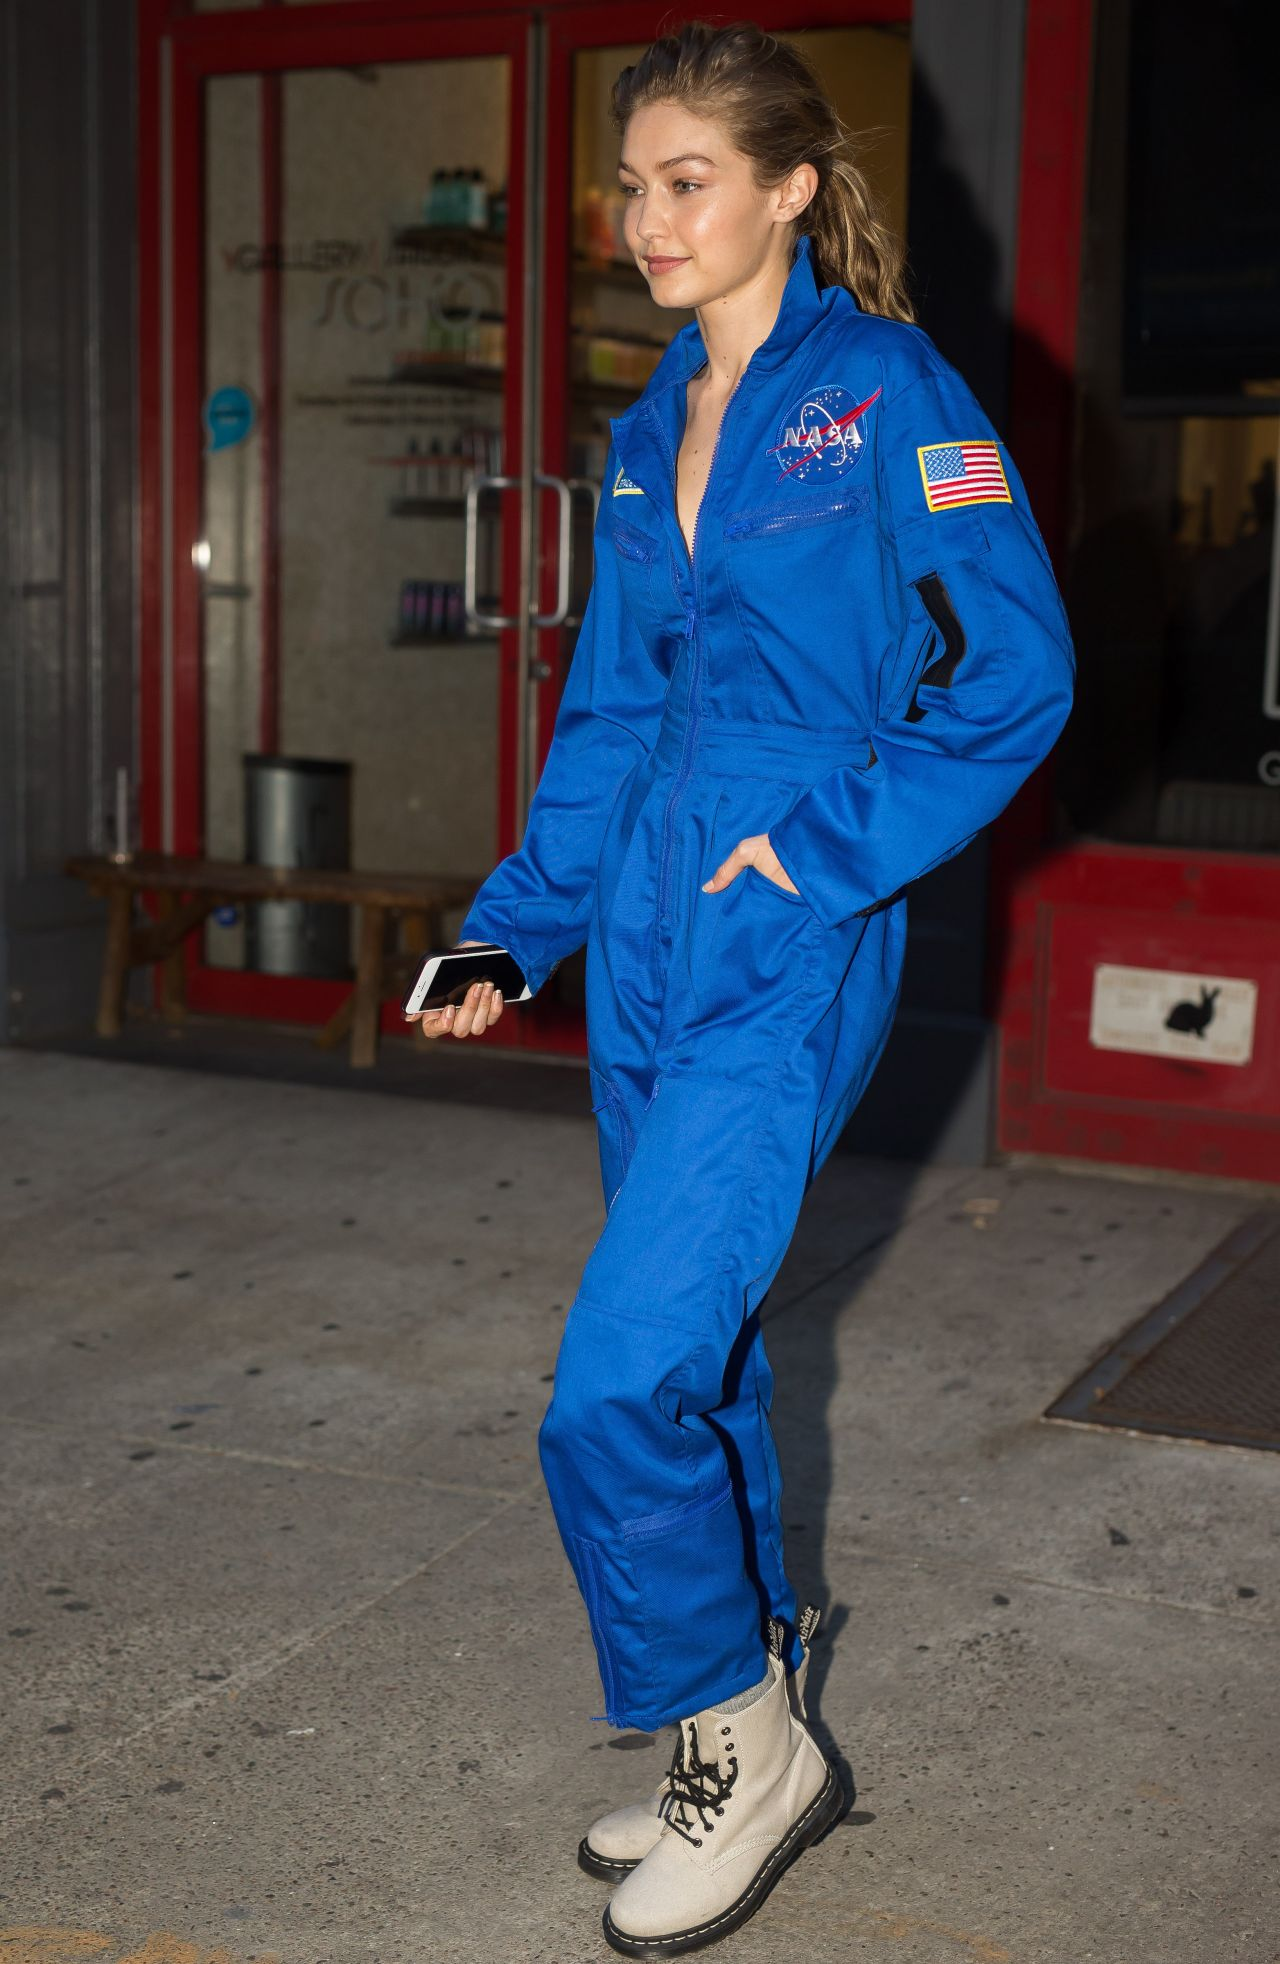 nasa jumpsuit blue - photo #40